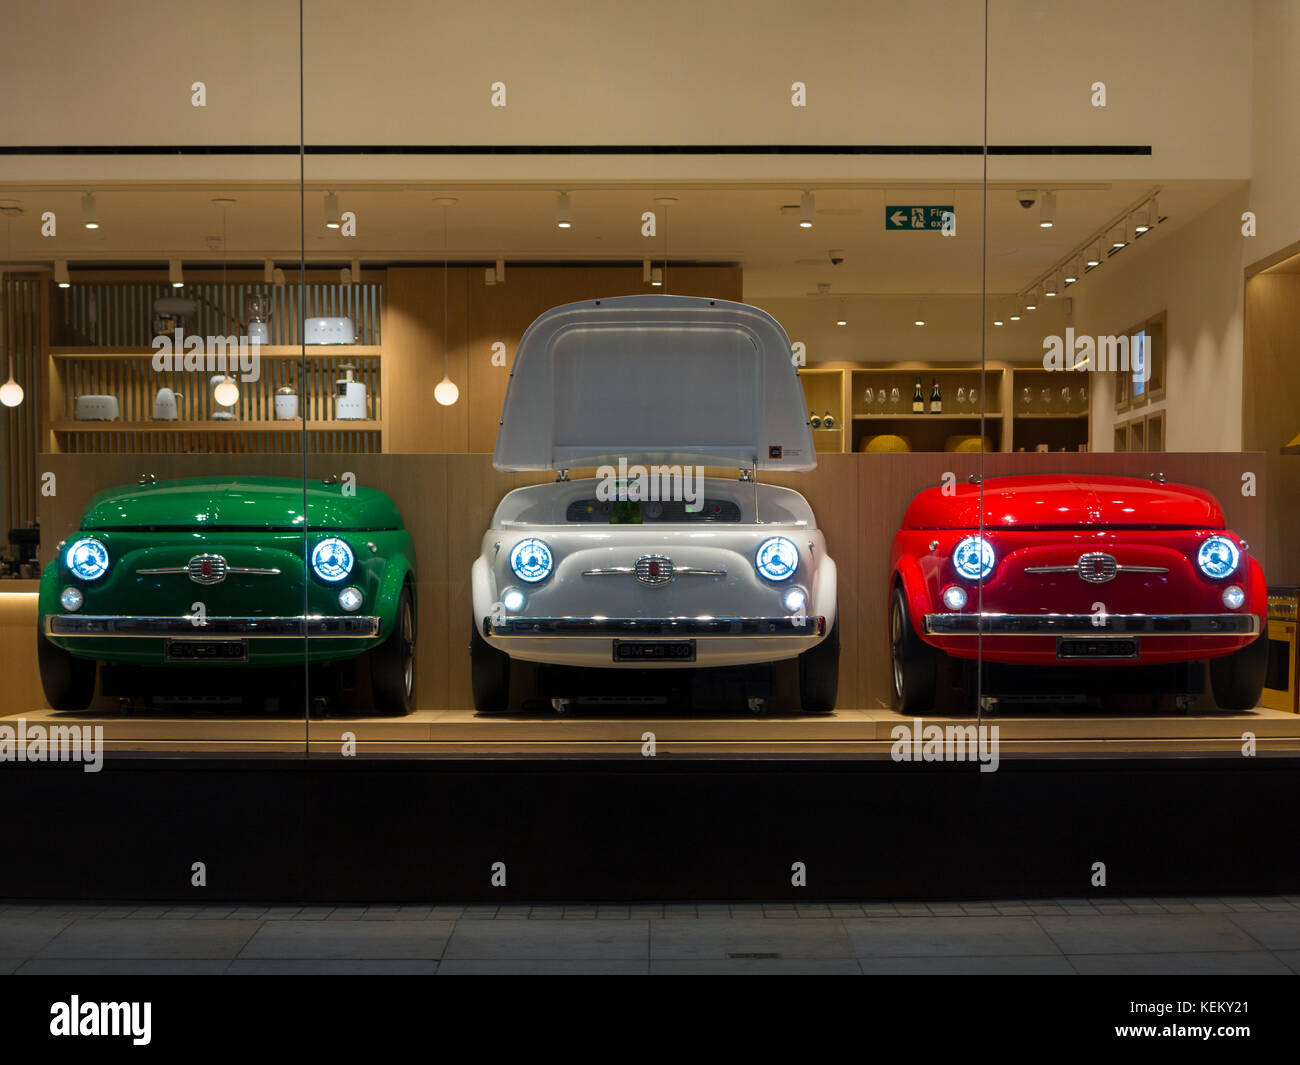 Three Fiat Fridges In A SMEG Showroom In London Stock Photo - Fiat dealers in london